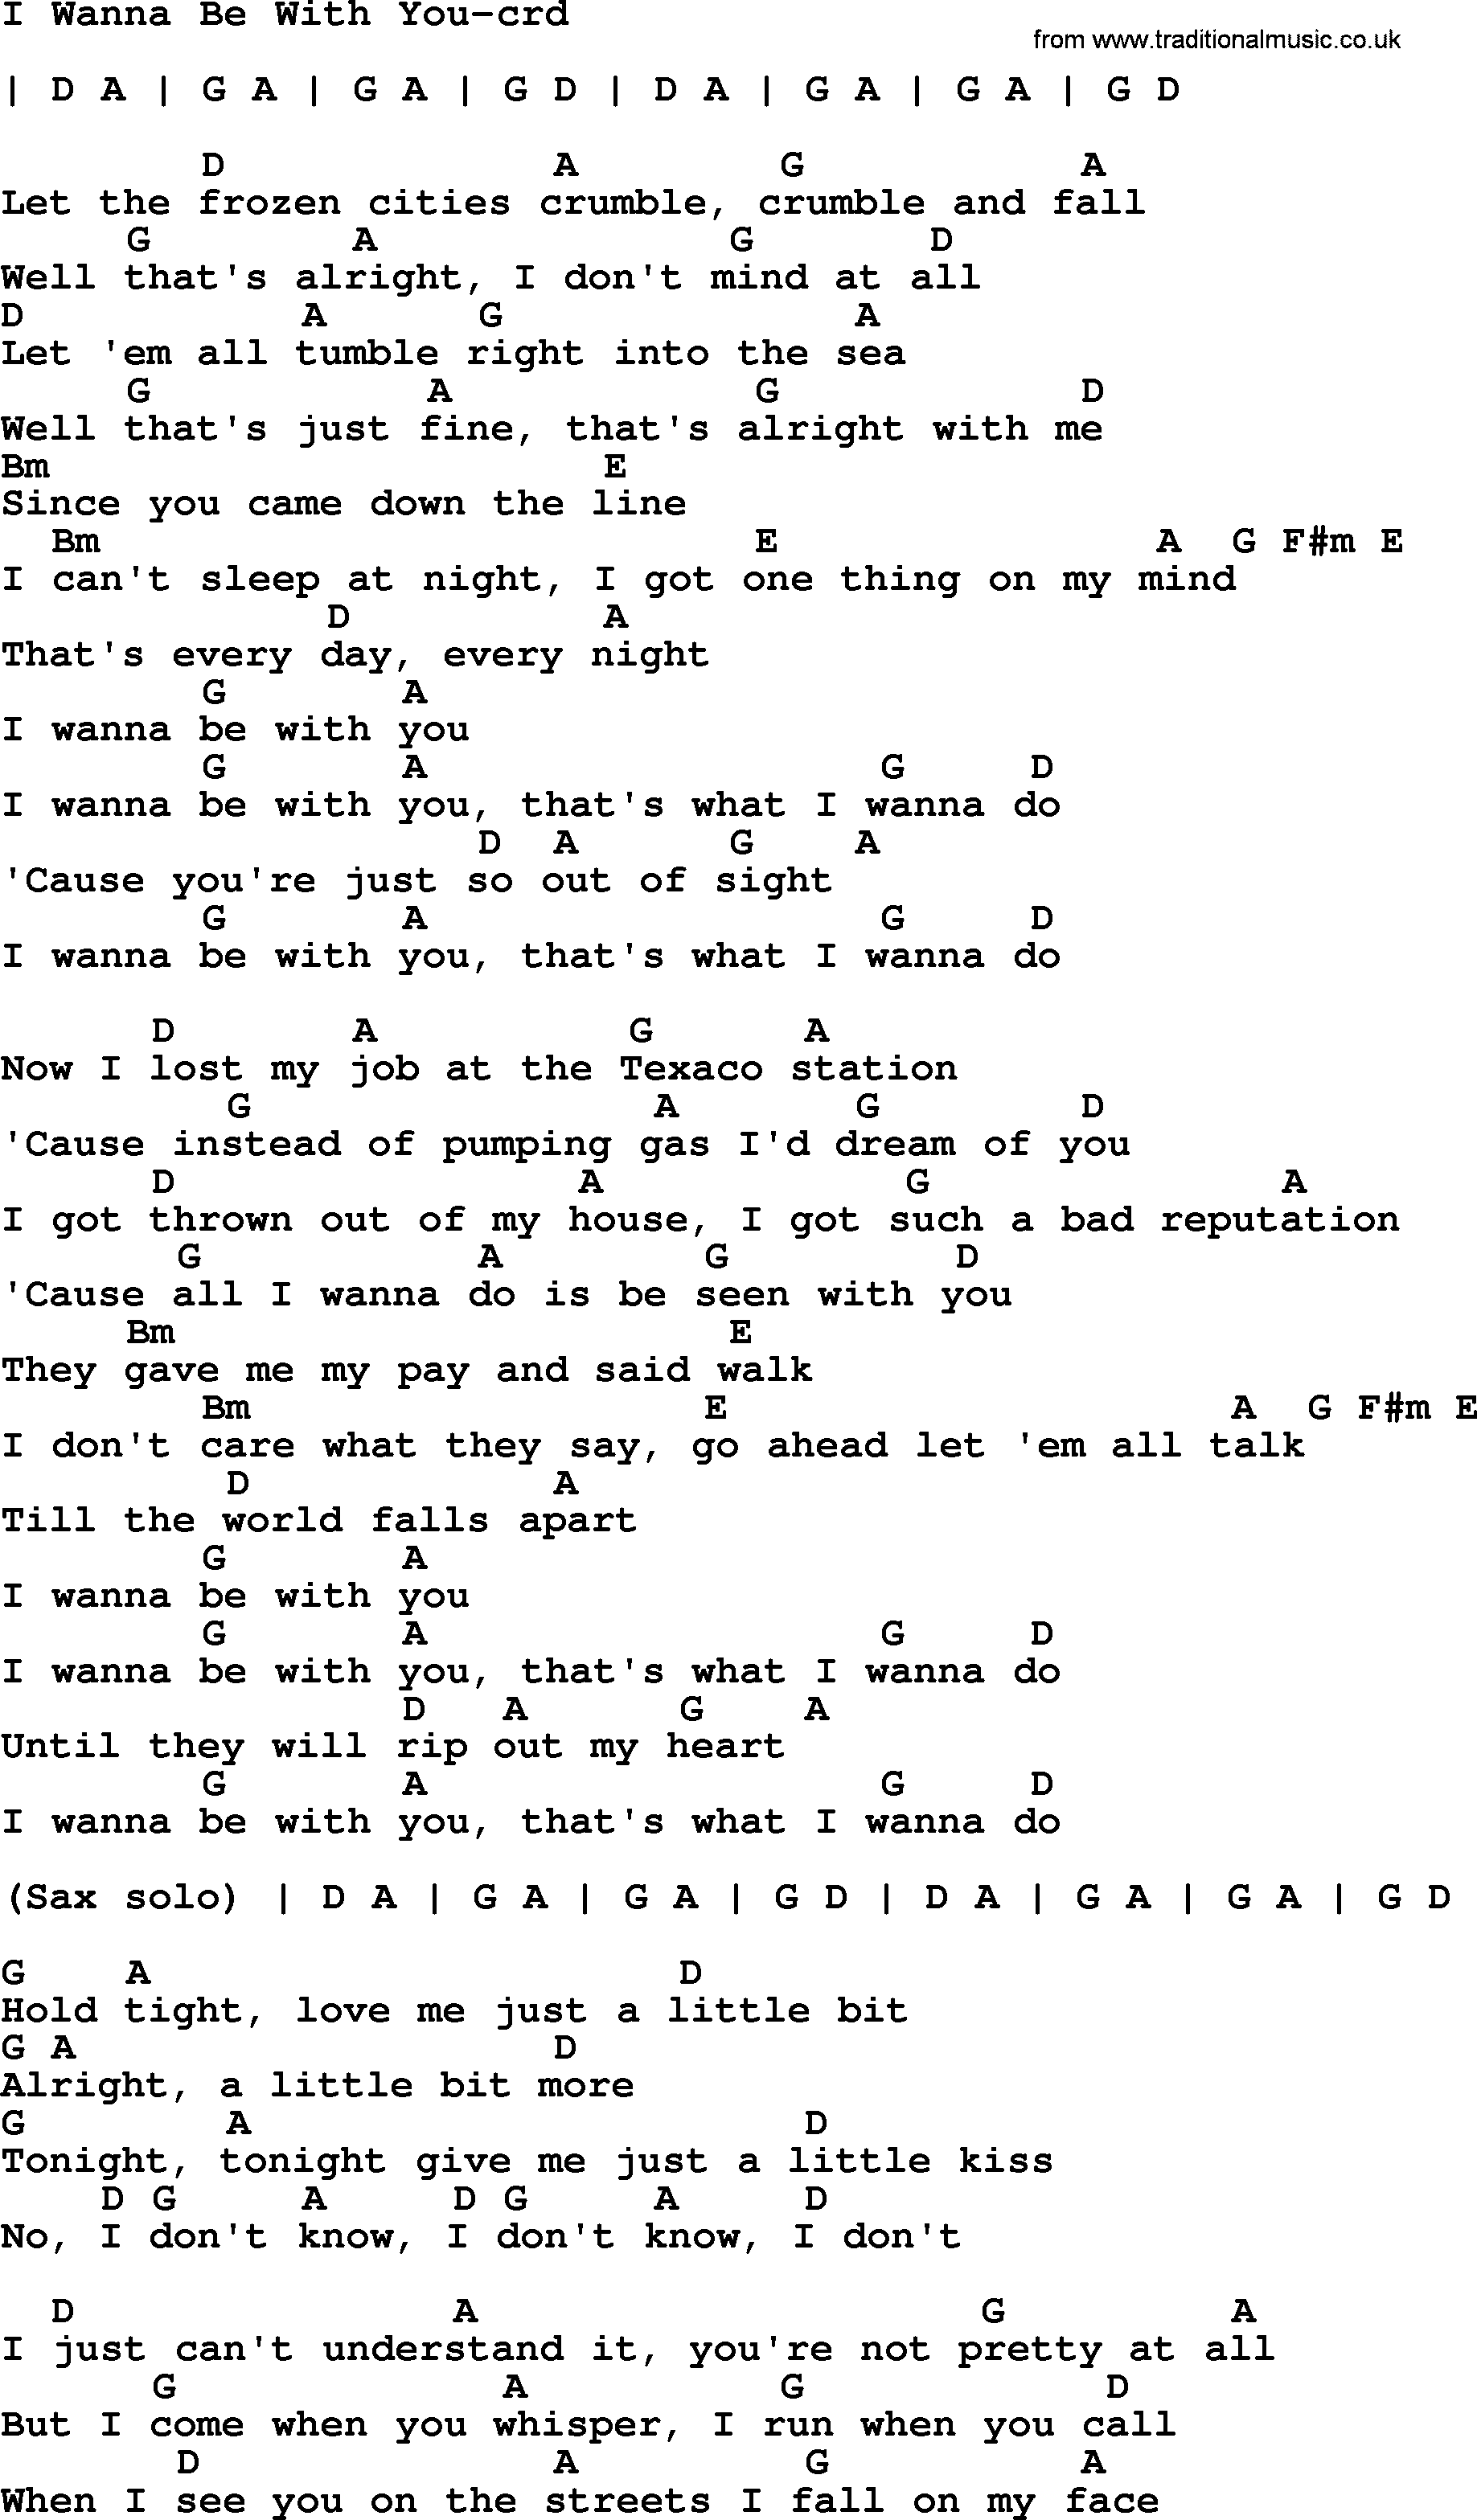 Bruce Springsteen Song I Wanna Be With You Lyrics And Chords